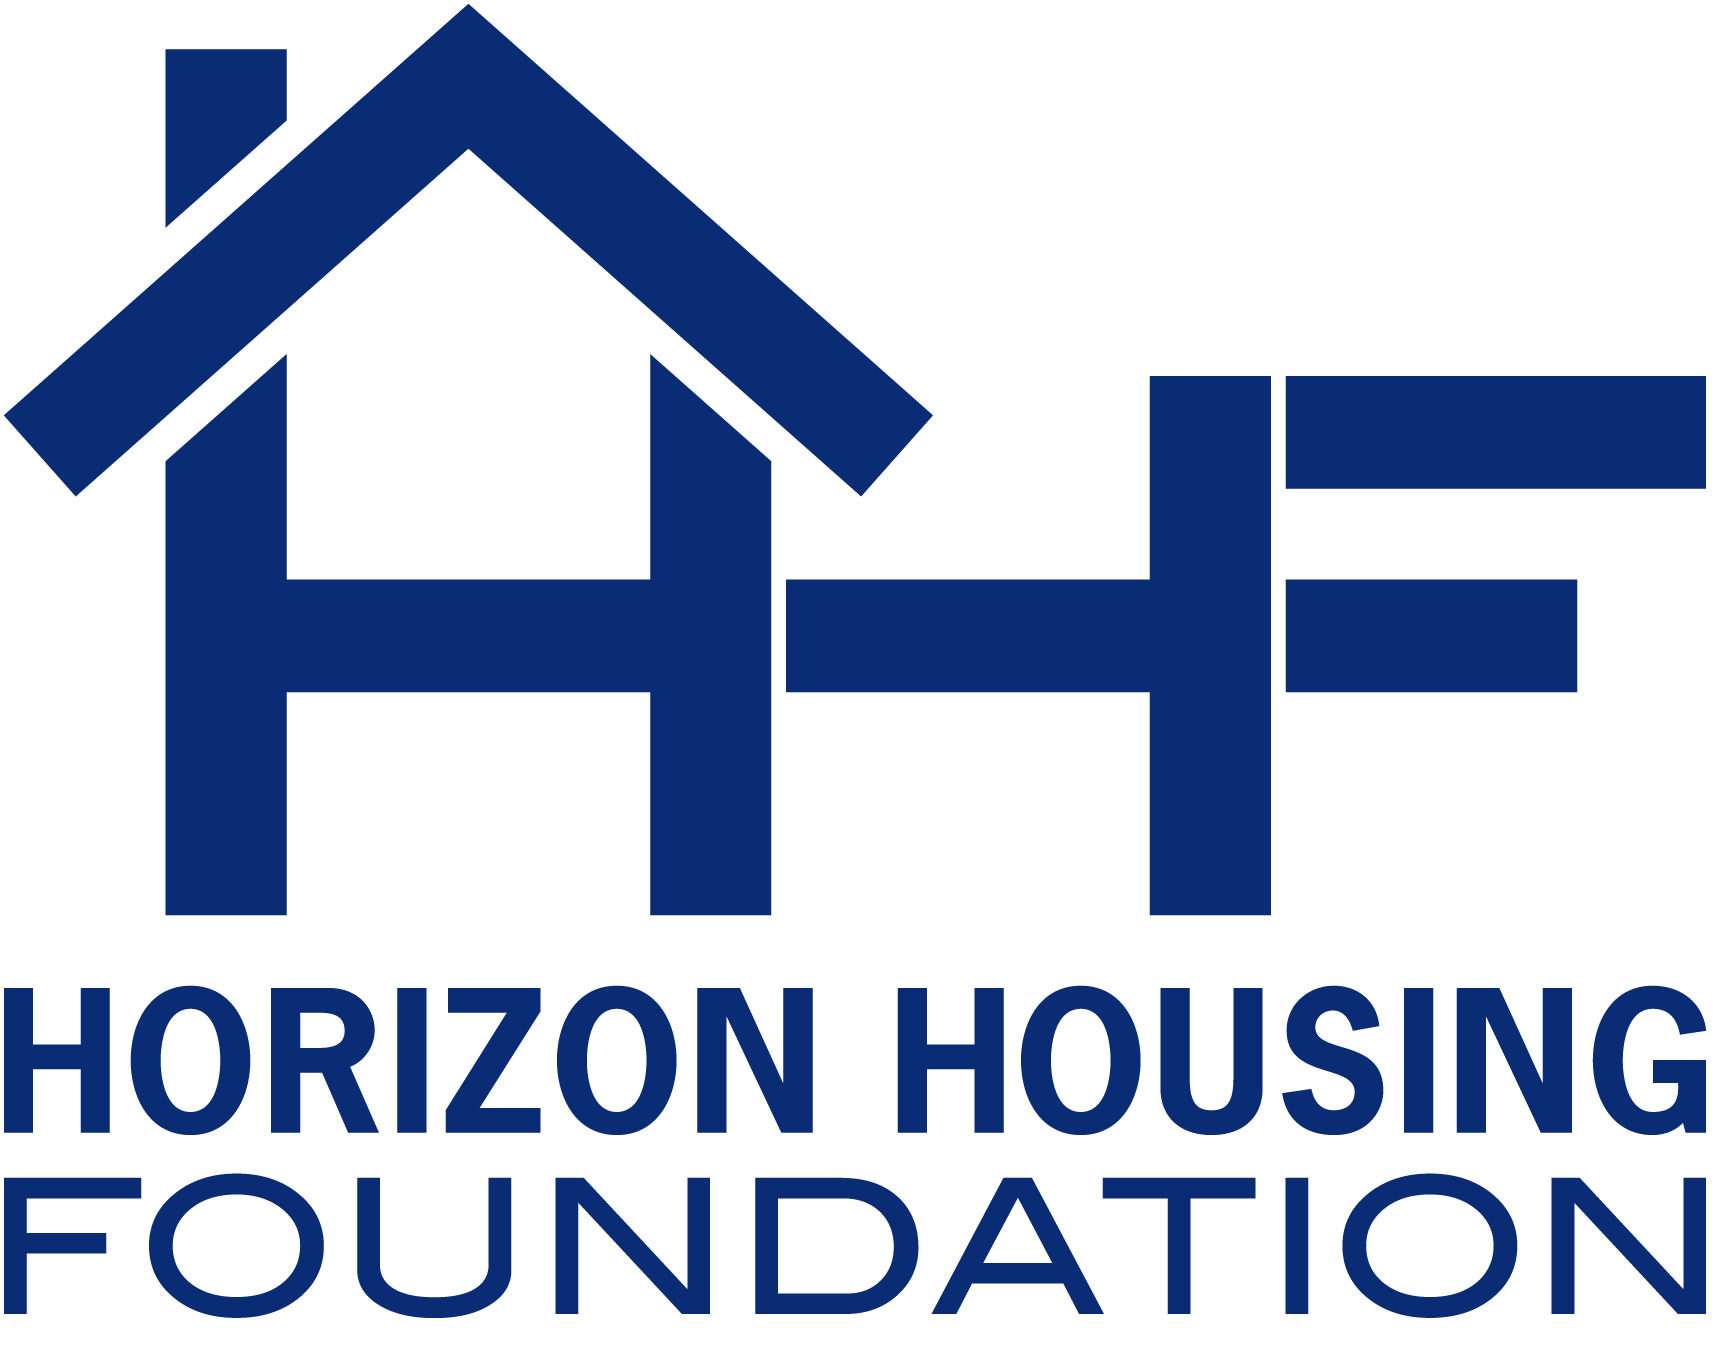 Horizon Housing Foundation